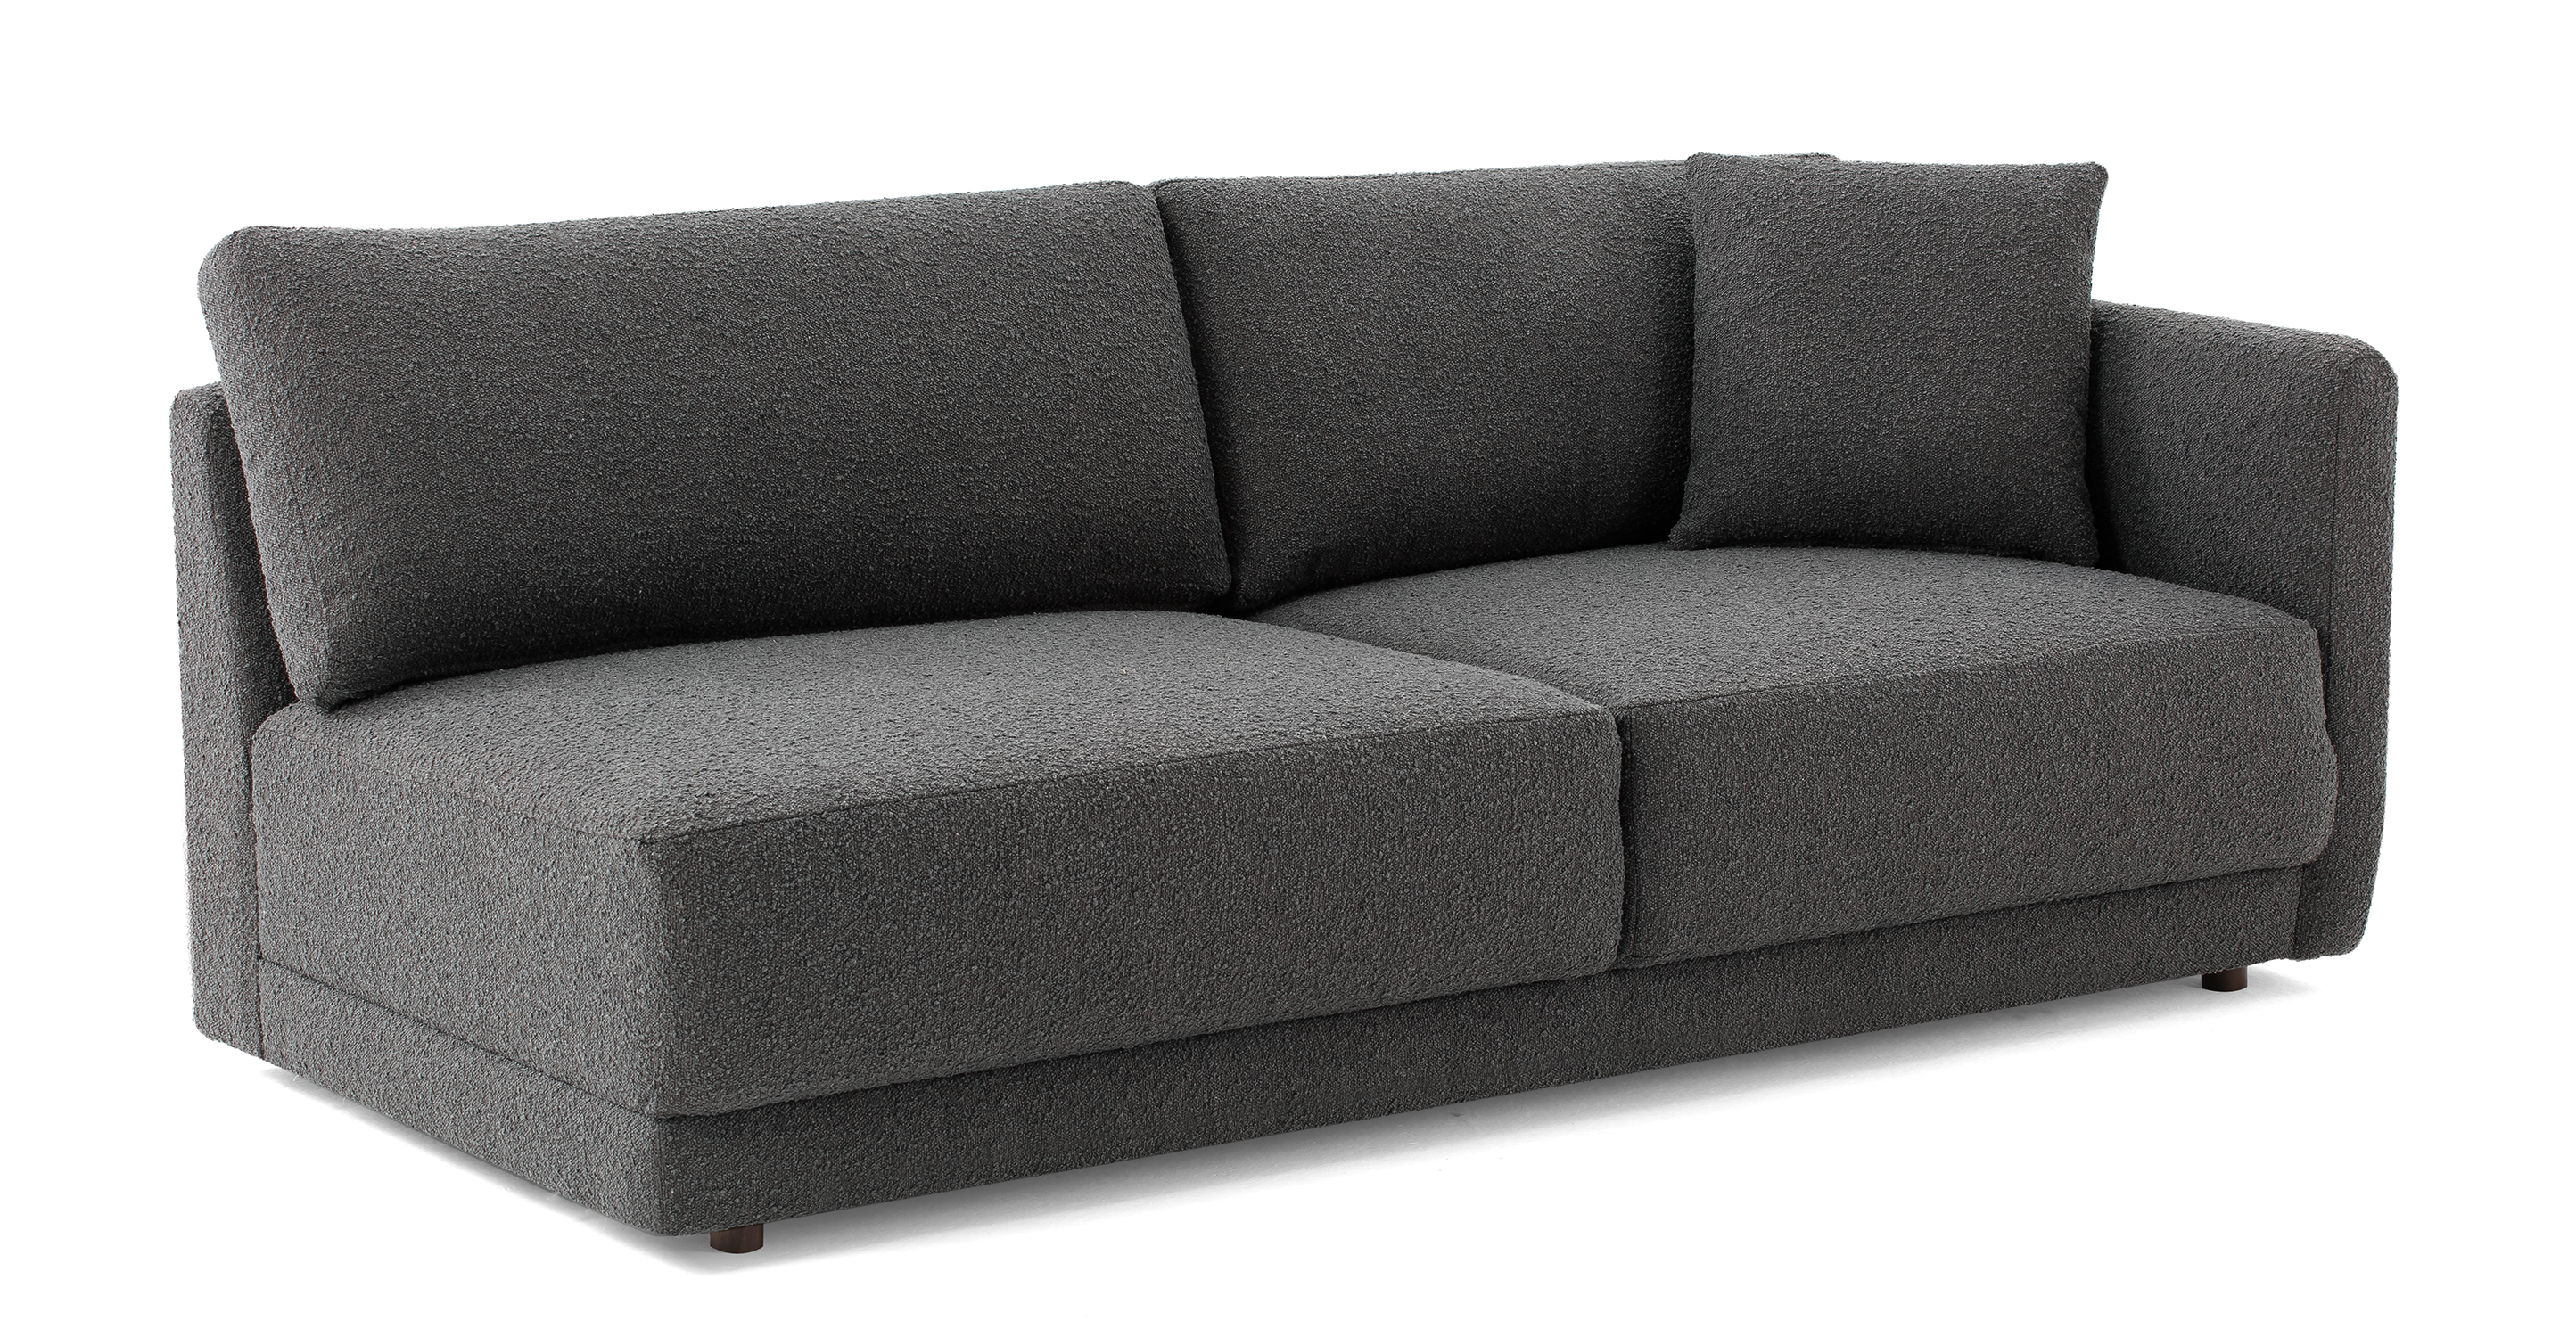 "Domus 77"" Right Arm Fabric Sofa, Gris Boucle"